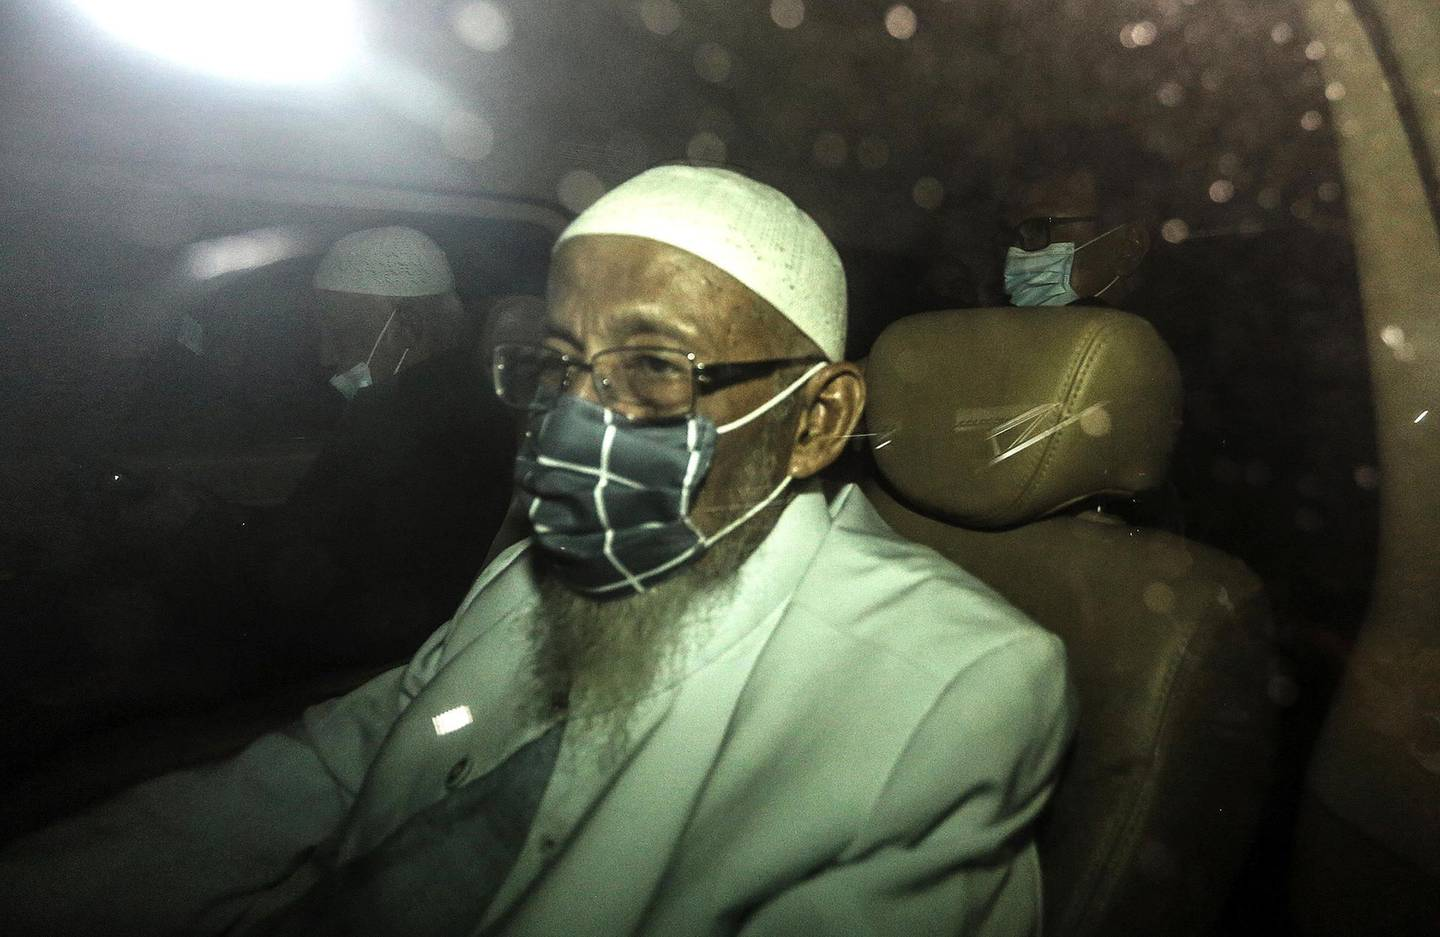 Abu Bakar Bashir, 82, once synonymous with militant Islam in the world's biggest Muslim majority nation, leaves the Gunung Sindur prison in Bogor, on the outskirts of Jakarta, after completing a 15 year prison term on January 8, 2021. / AFP / Aditya Aji